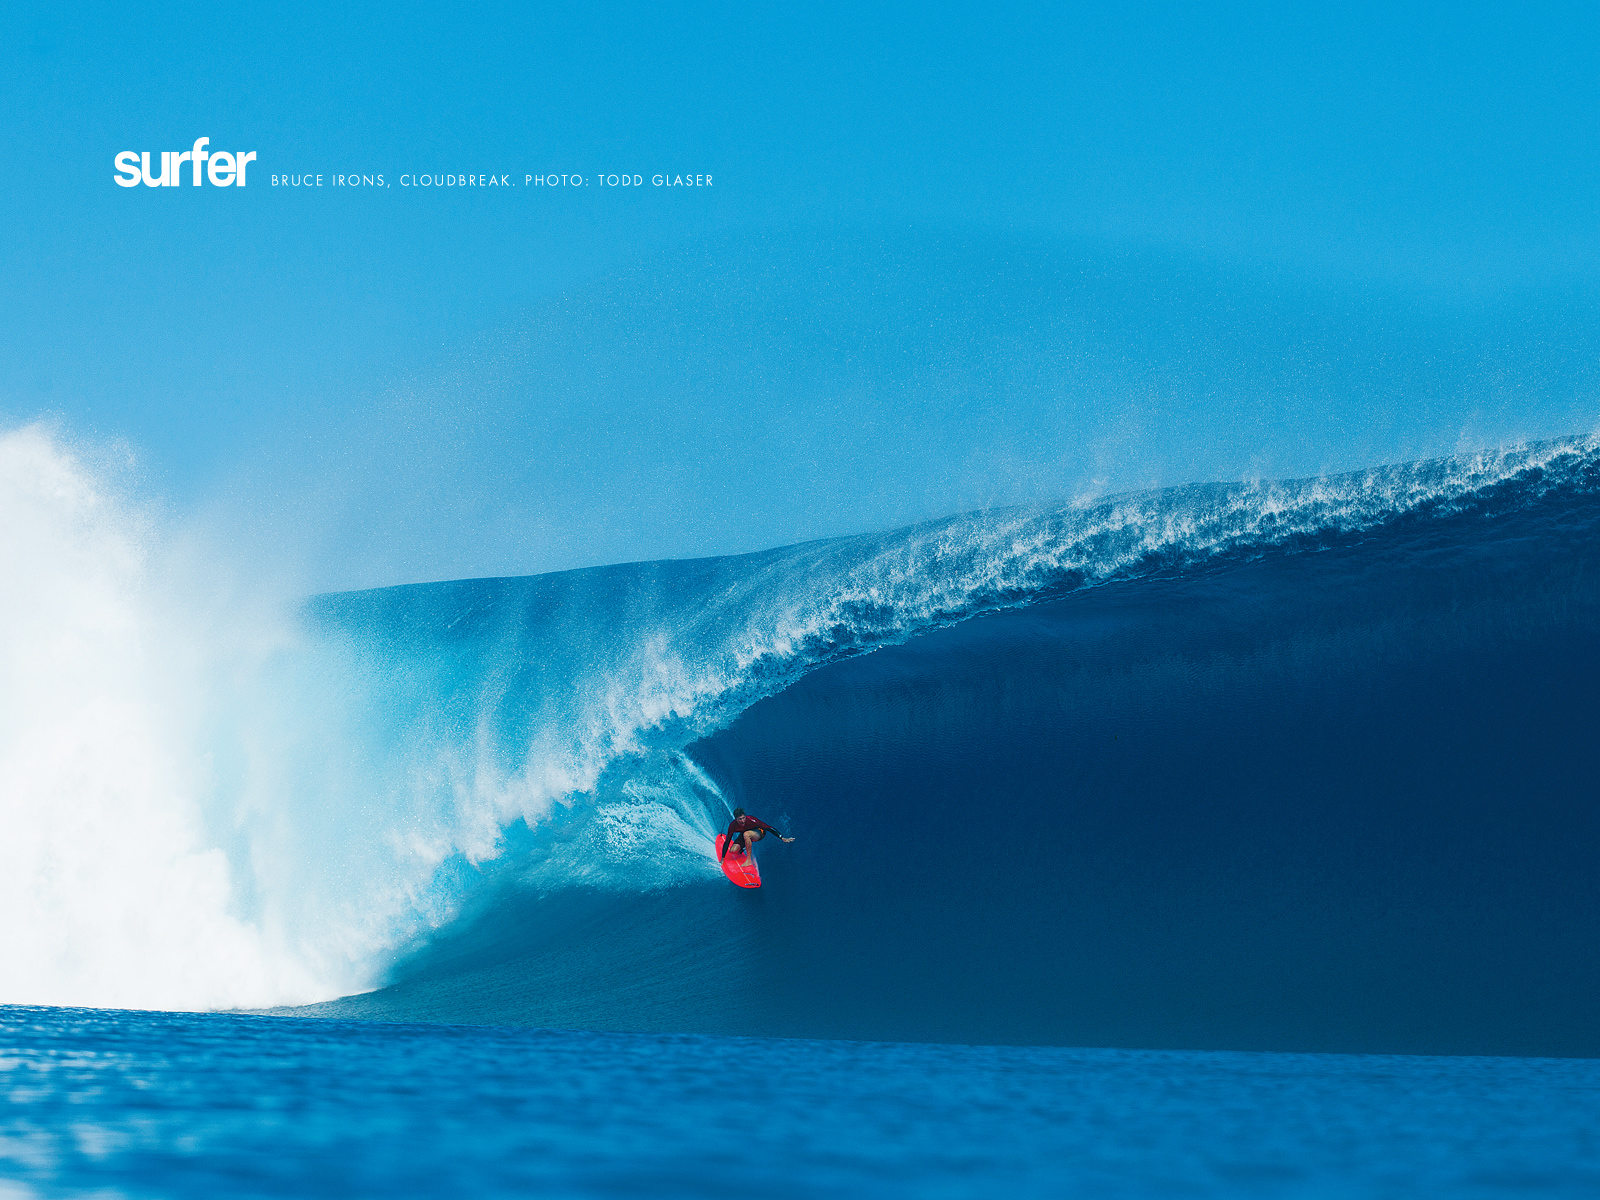 Todd Glaser: Bruce Irons Wallpaper